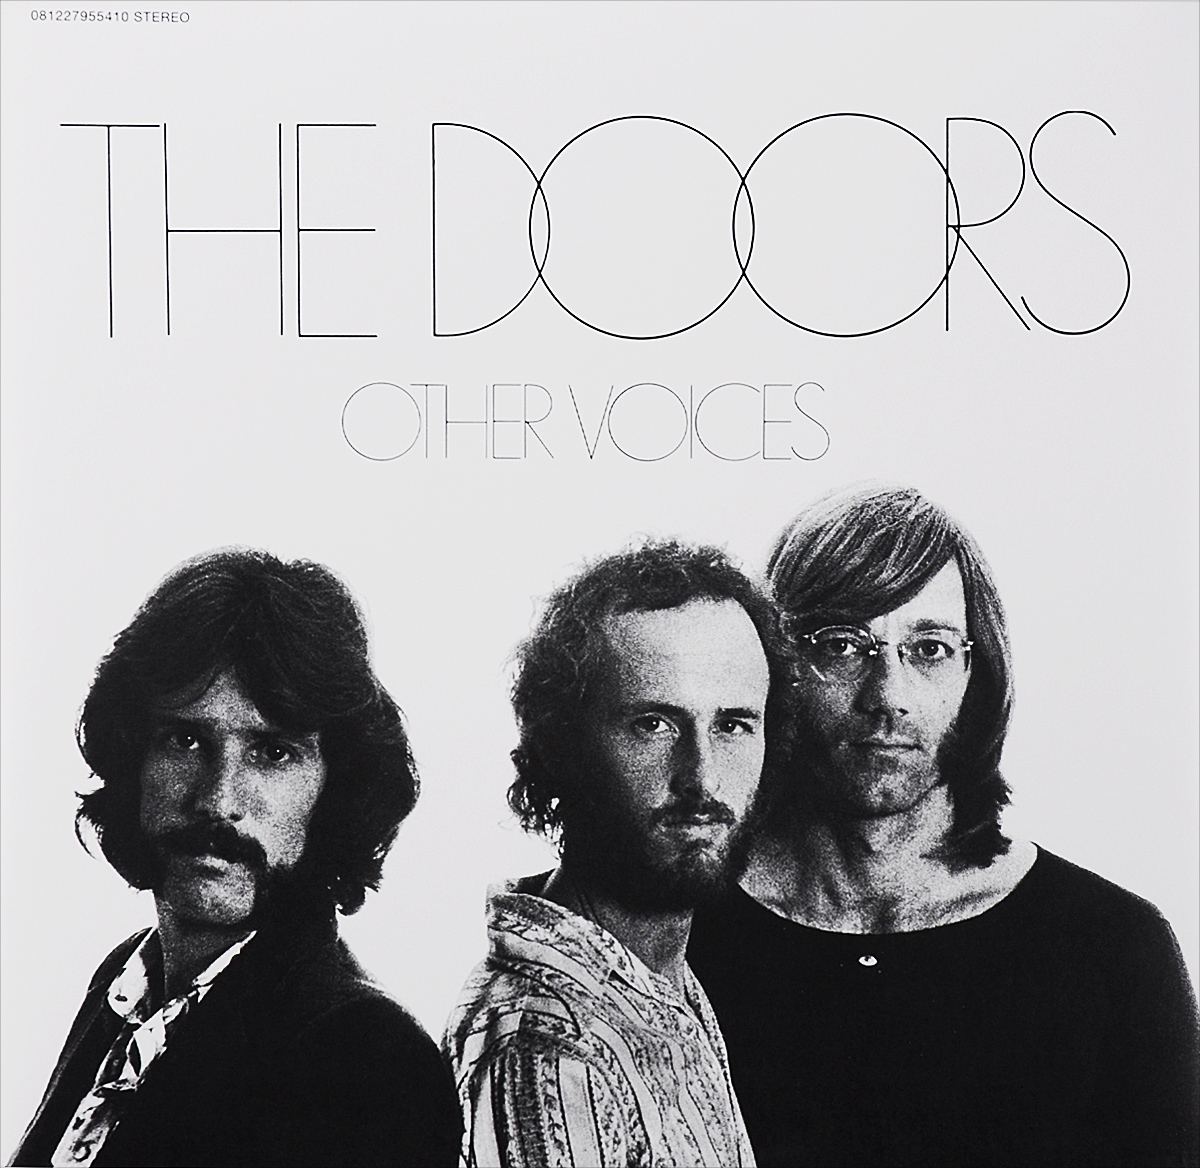 The Doors The Doors. Other Voices (LP) the doors – the doors lp 3 cd